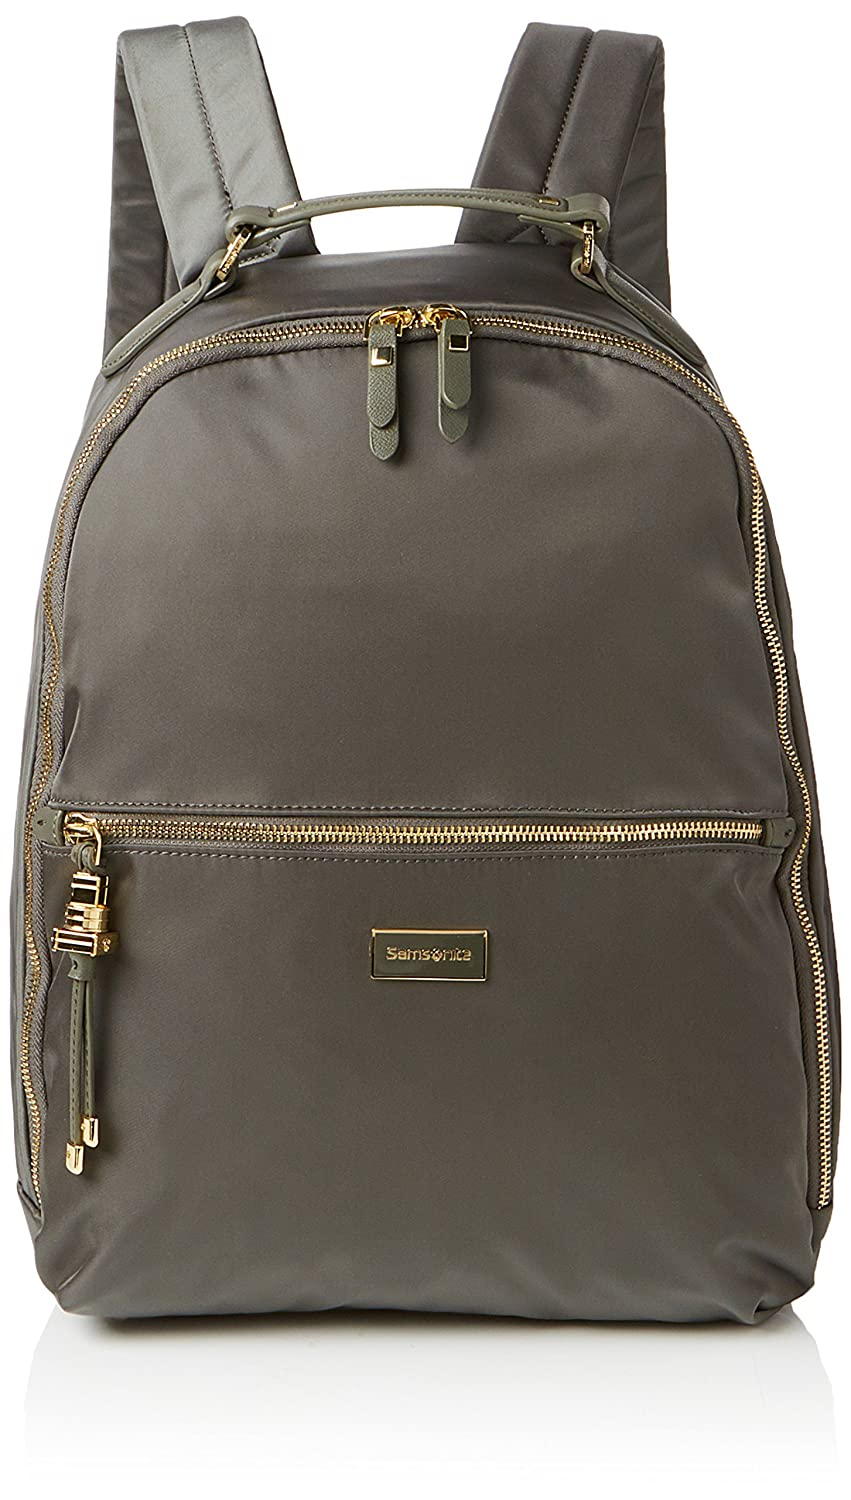 SAMSONITE Karissa Biz - Laptop Backpack 14.1 Rucksack, 41 cm, 17.5 L, Gunmetal Grün